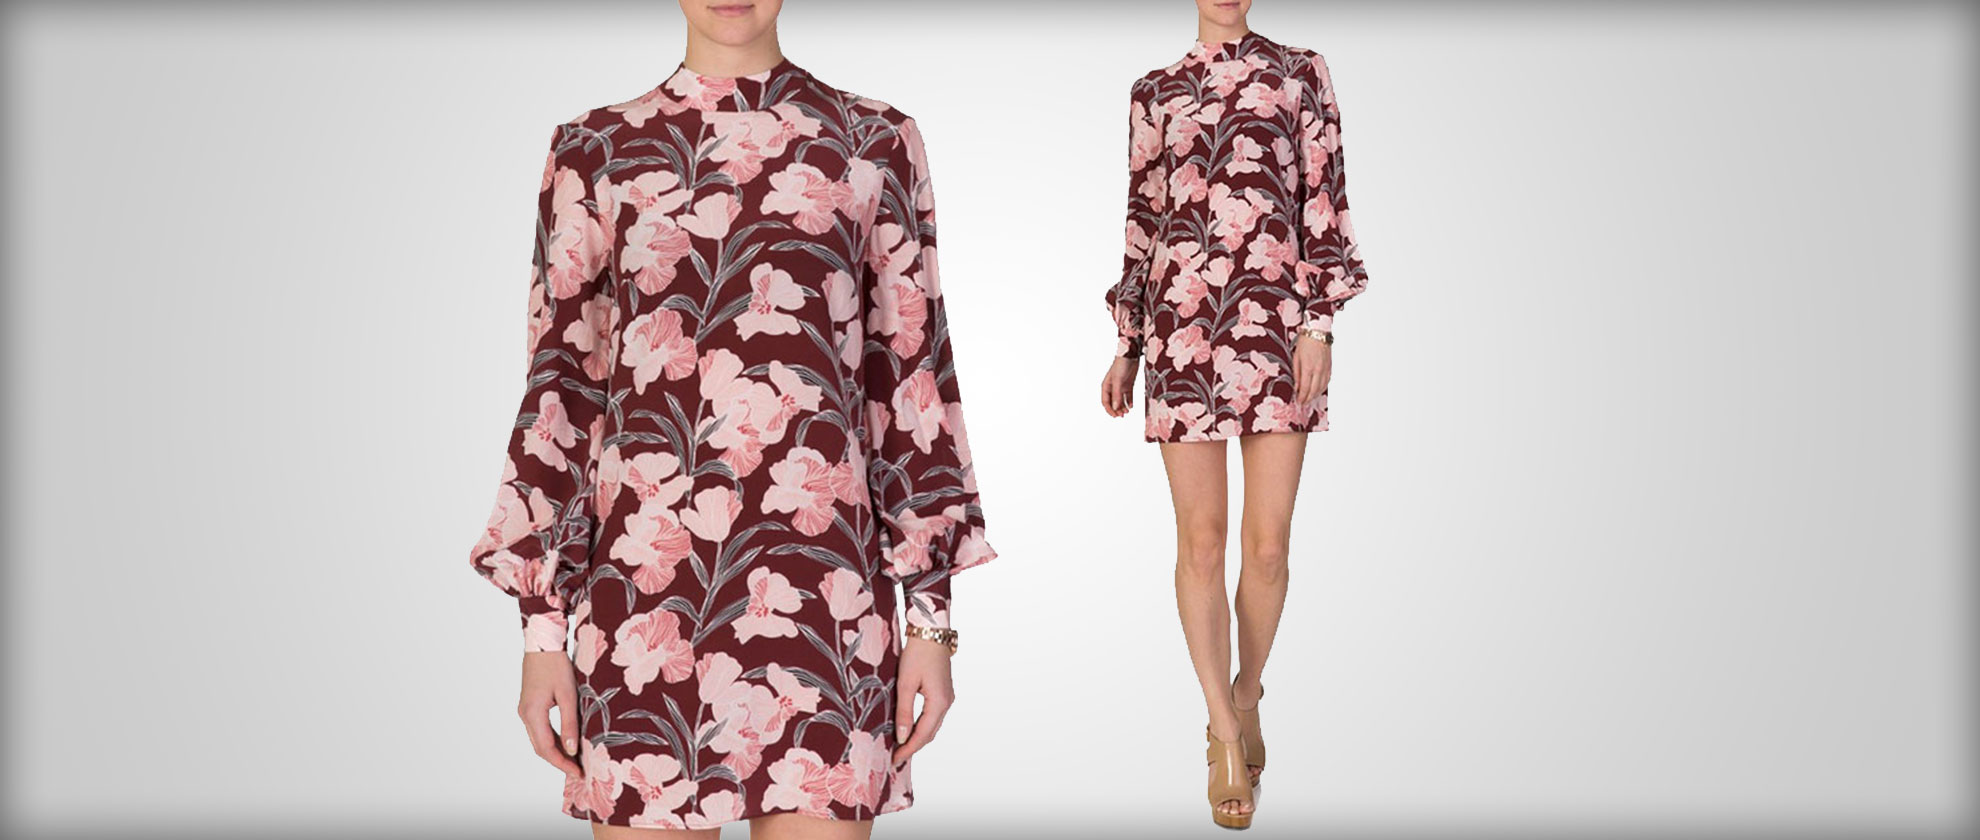 Staff Picks: Keepsake Burgundy Irreplaceable Floral Dress (70847)